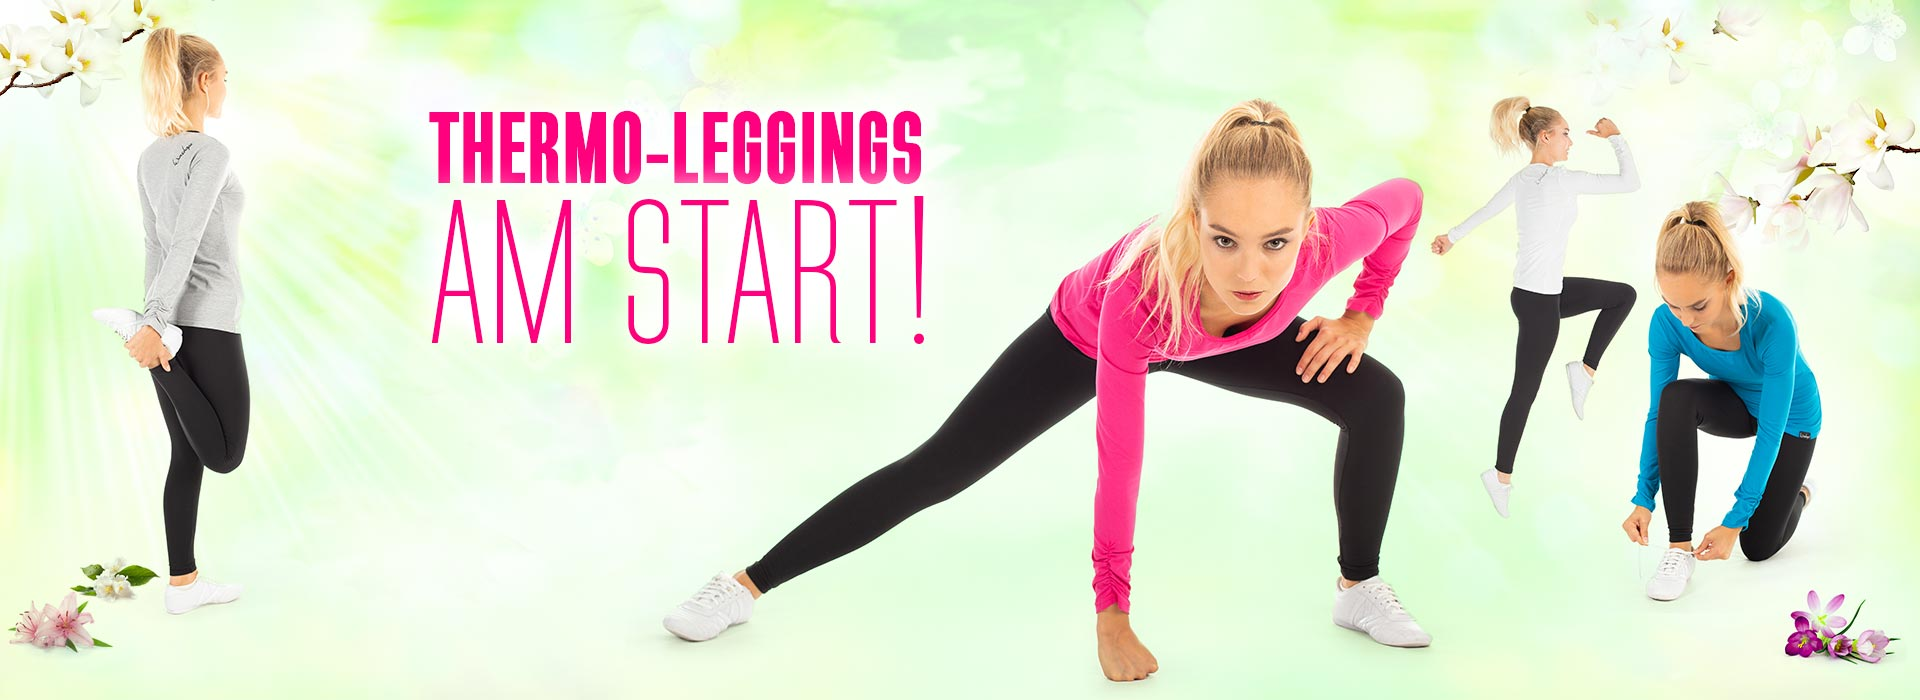 Nie wieder kalt! Thermo-Leggings am Start! SPRING DE